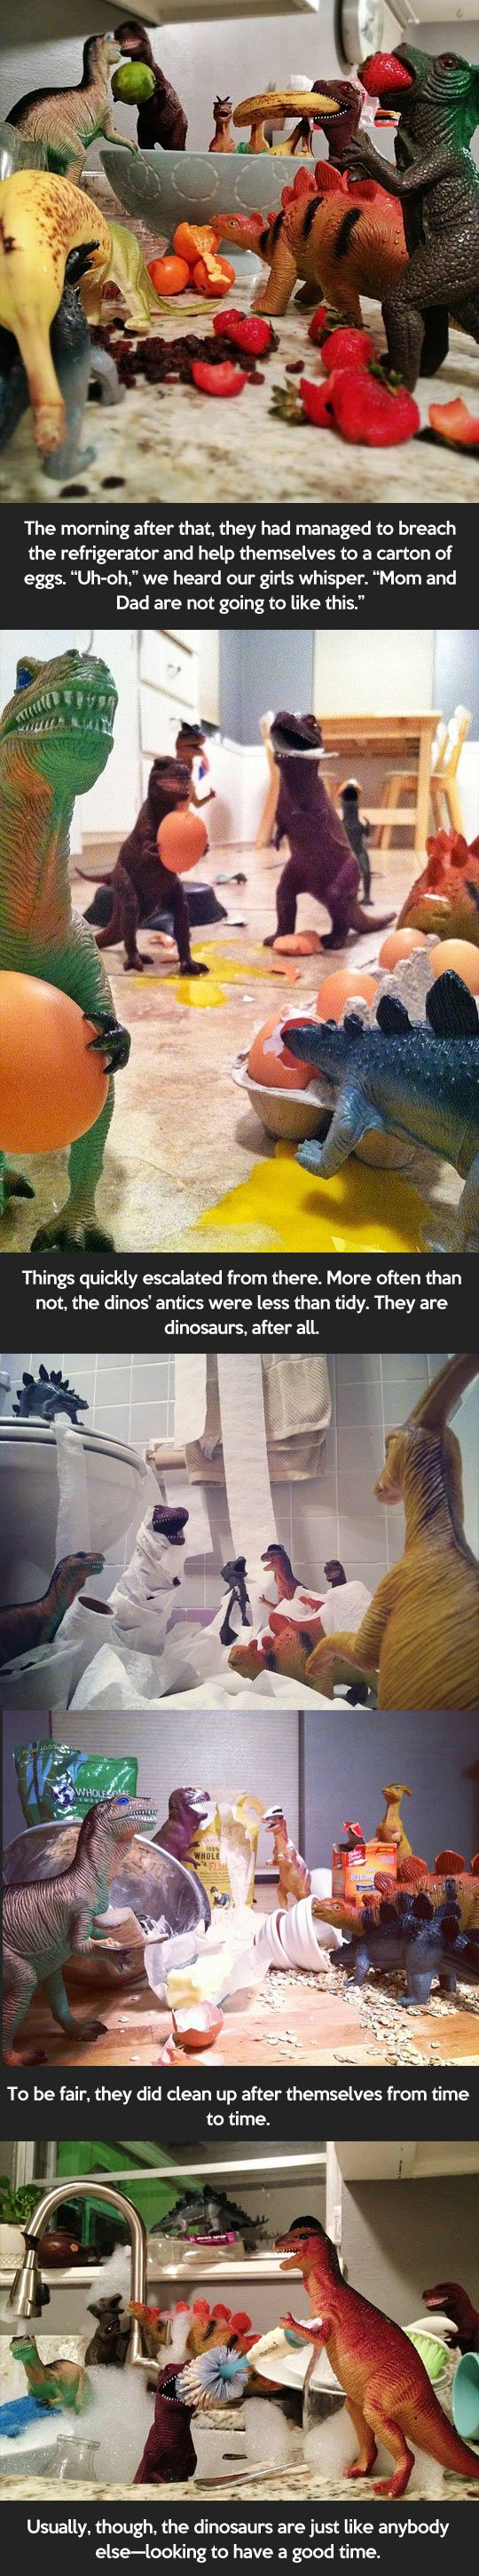 these parents are the best - need to click on the image to see the entire thing though!